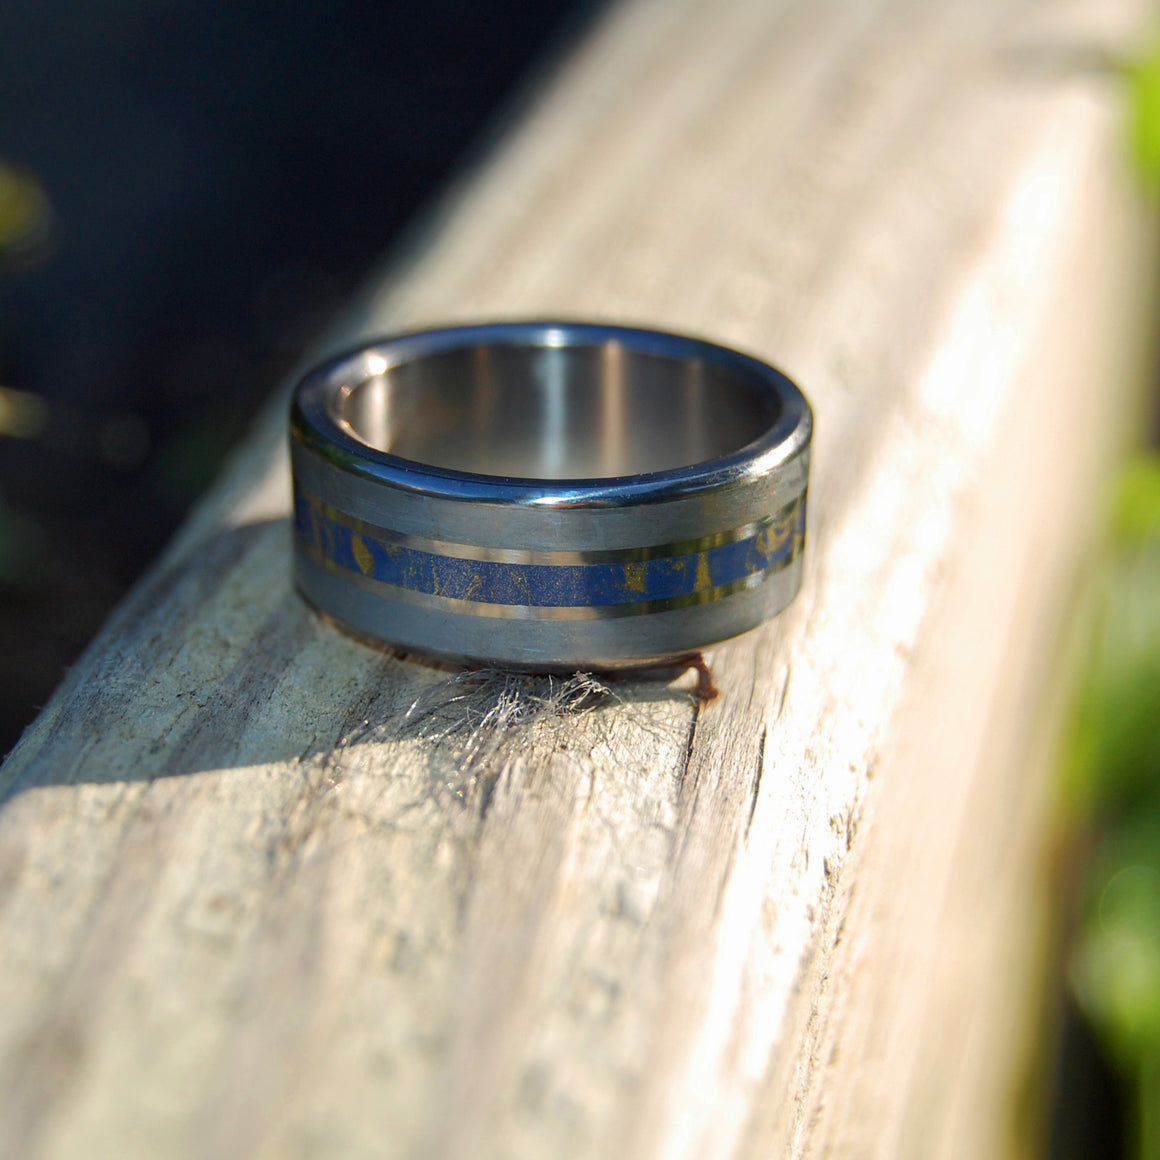 Gold at the Tip of the Comets Tail | Meteorite and Titanium Wedding Ring - Minter and Richter Designs